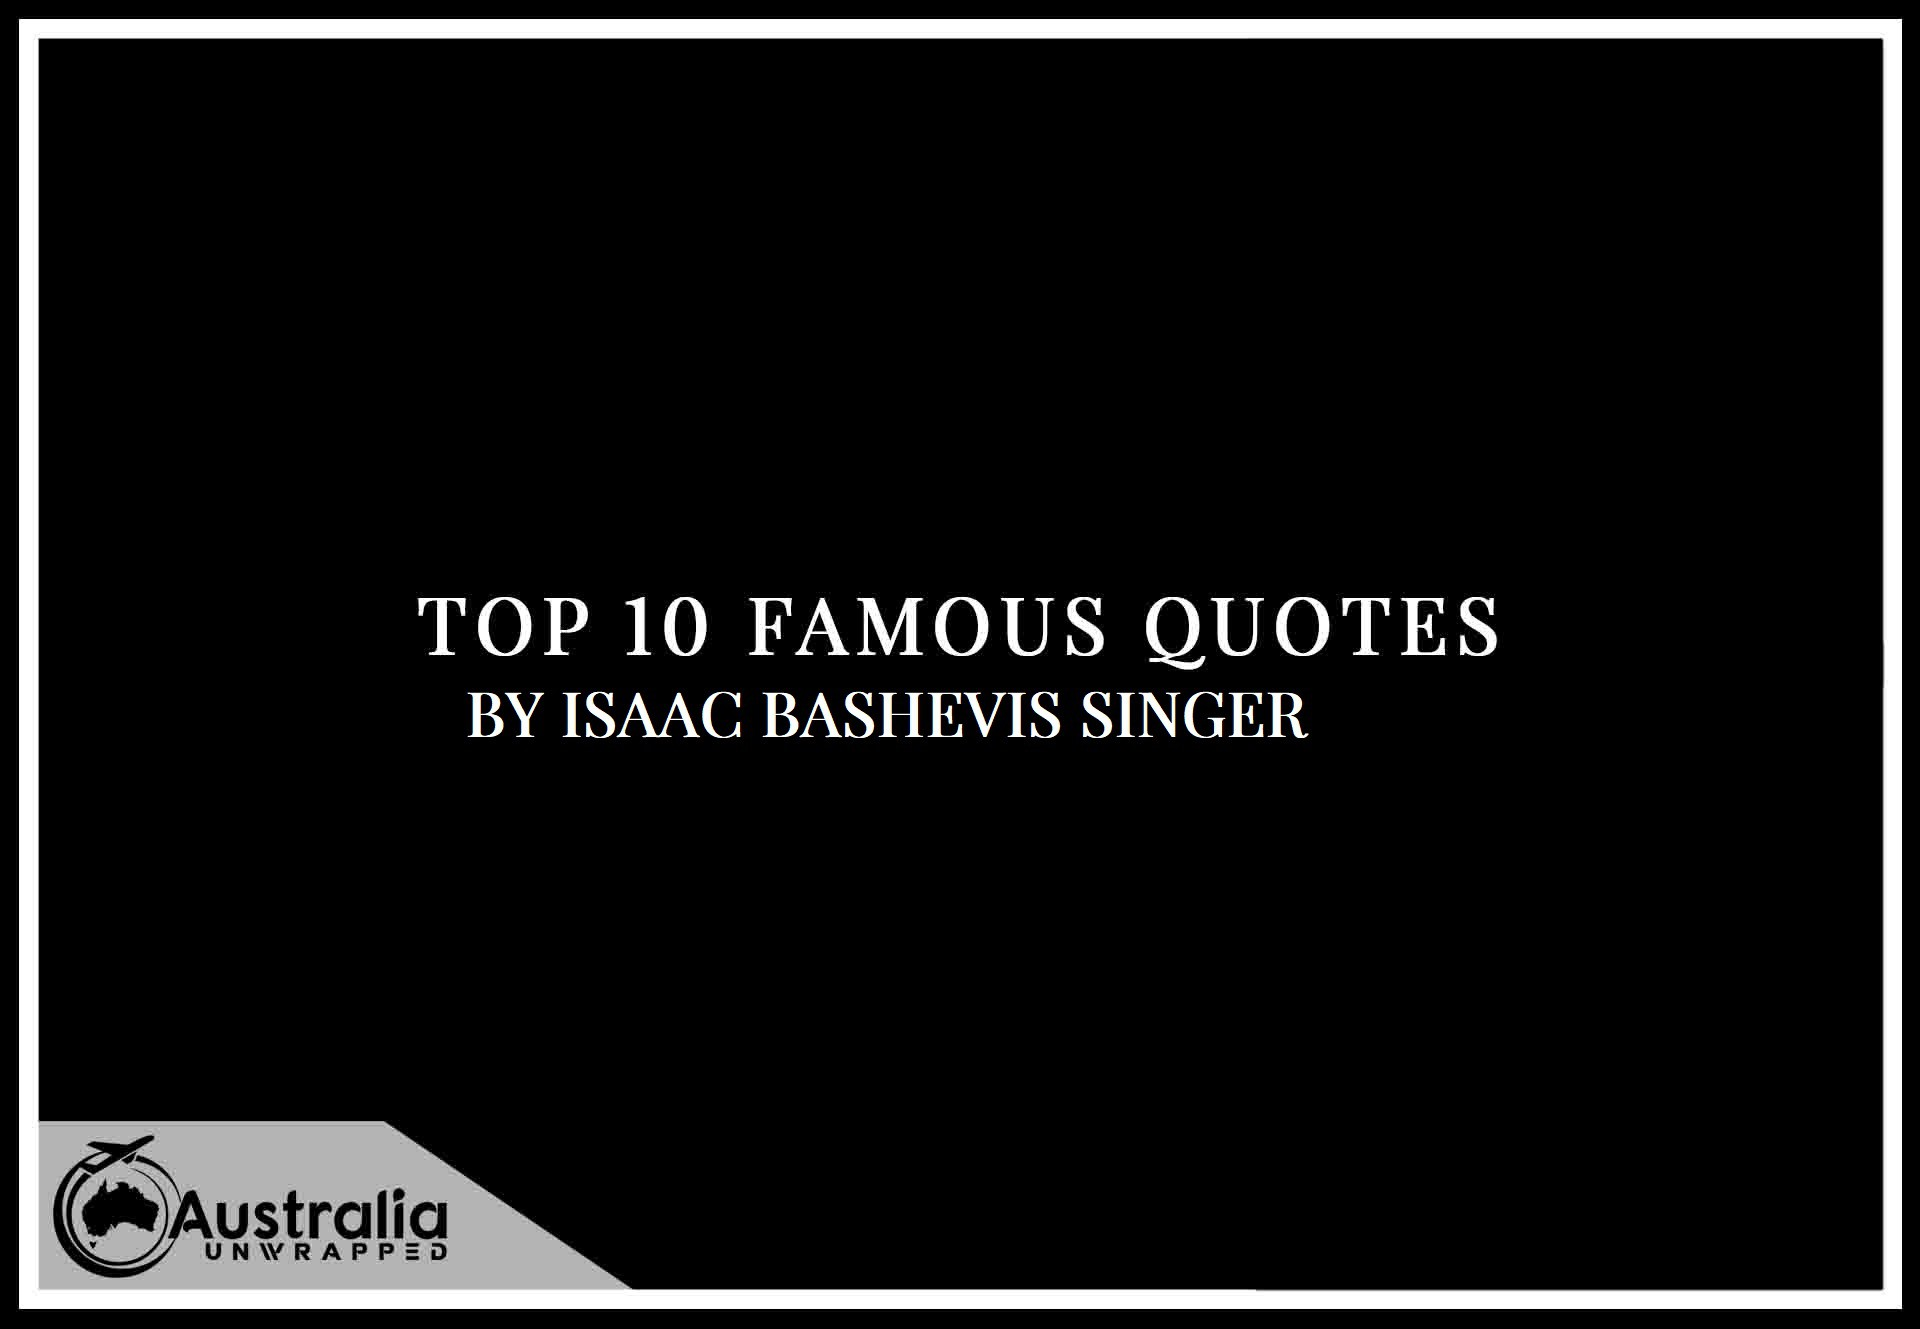 Top 10 Famous Quotes by Author Isaac Bashevis Singer